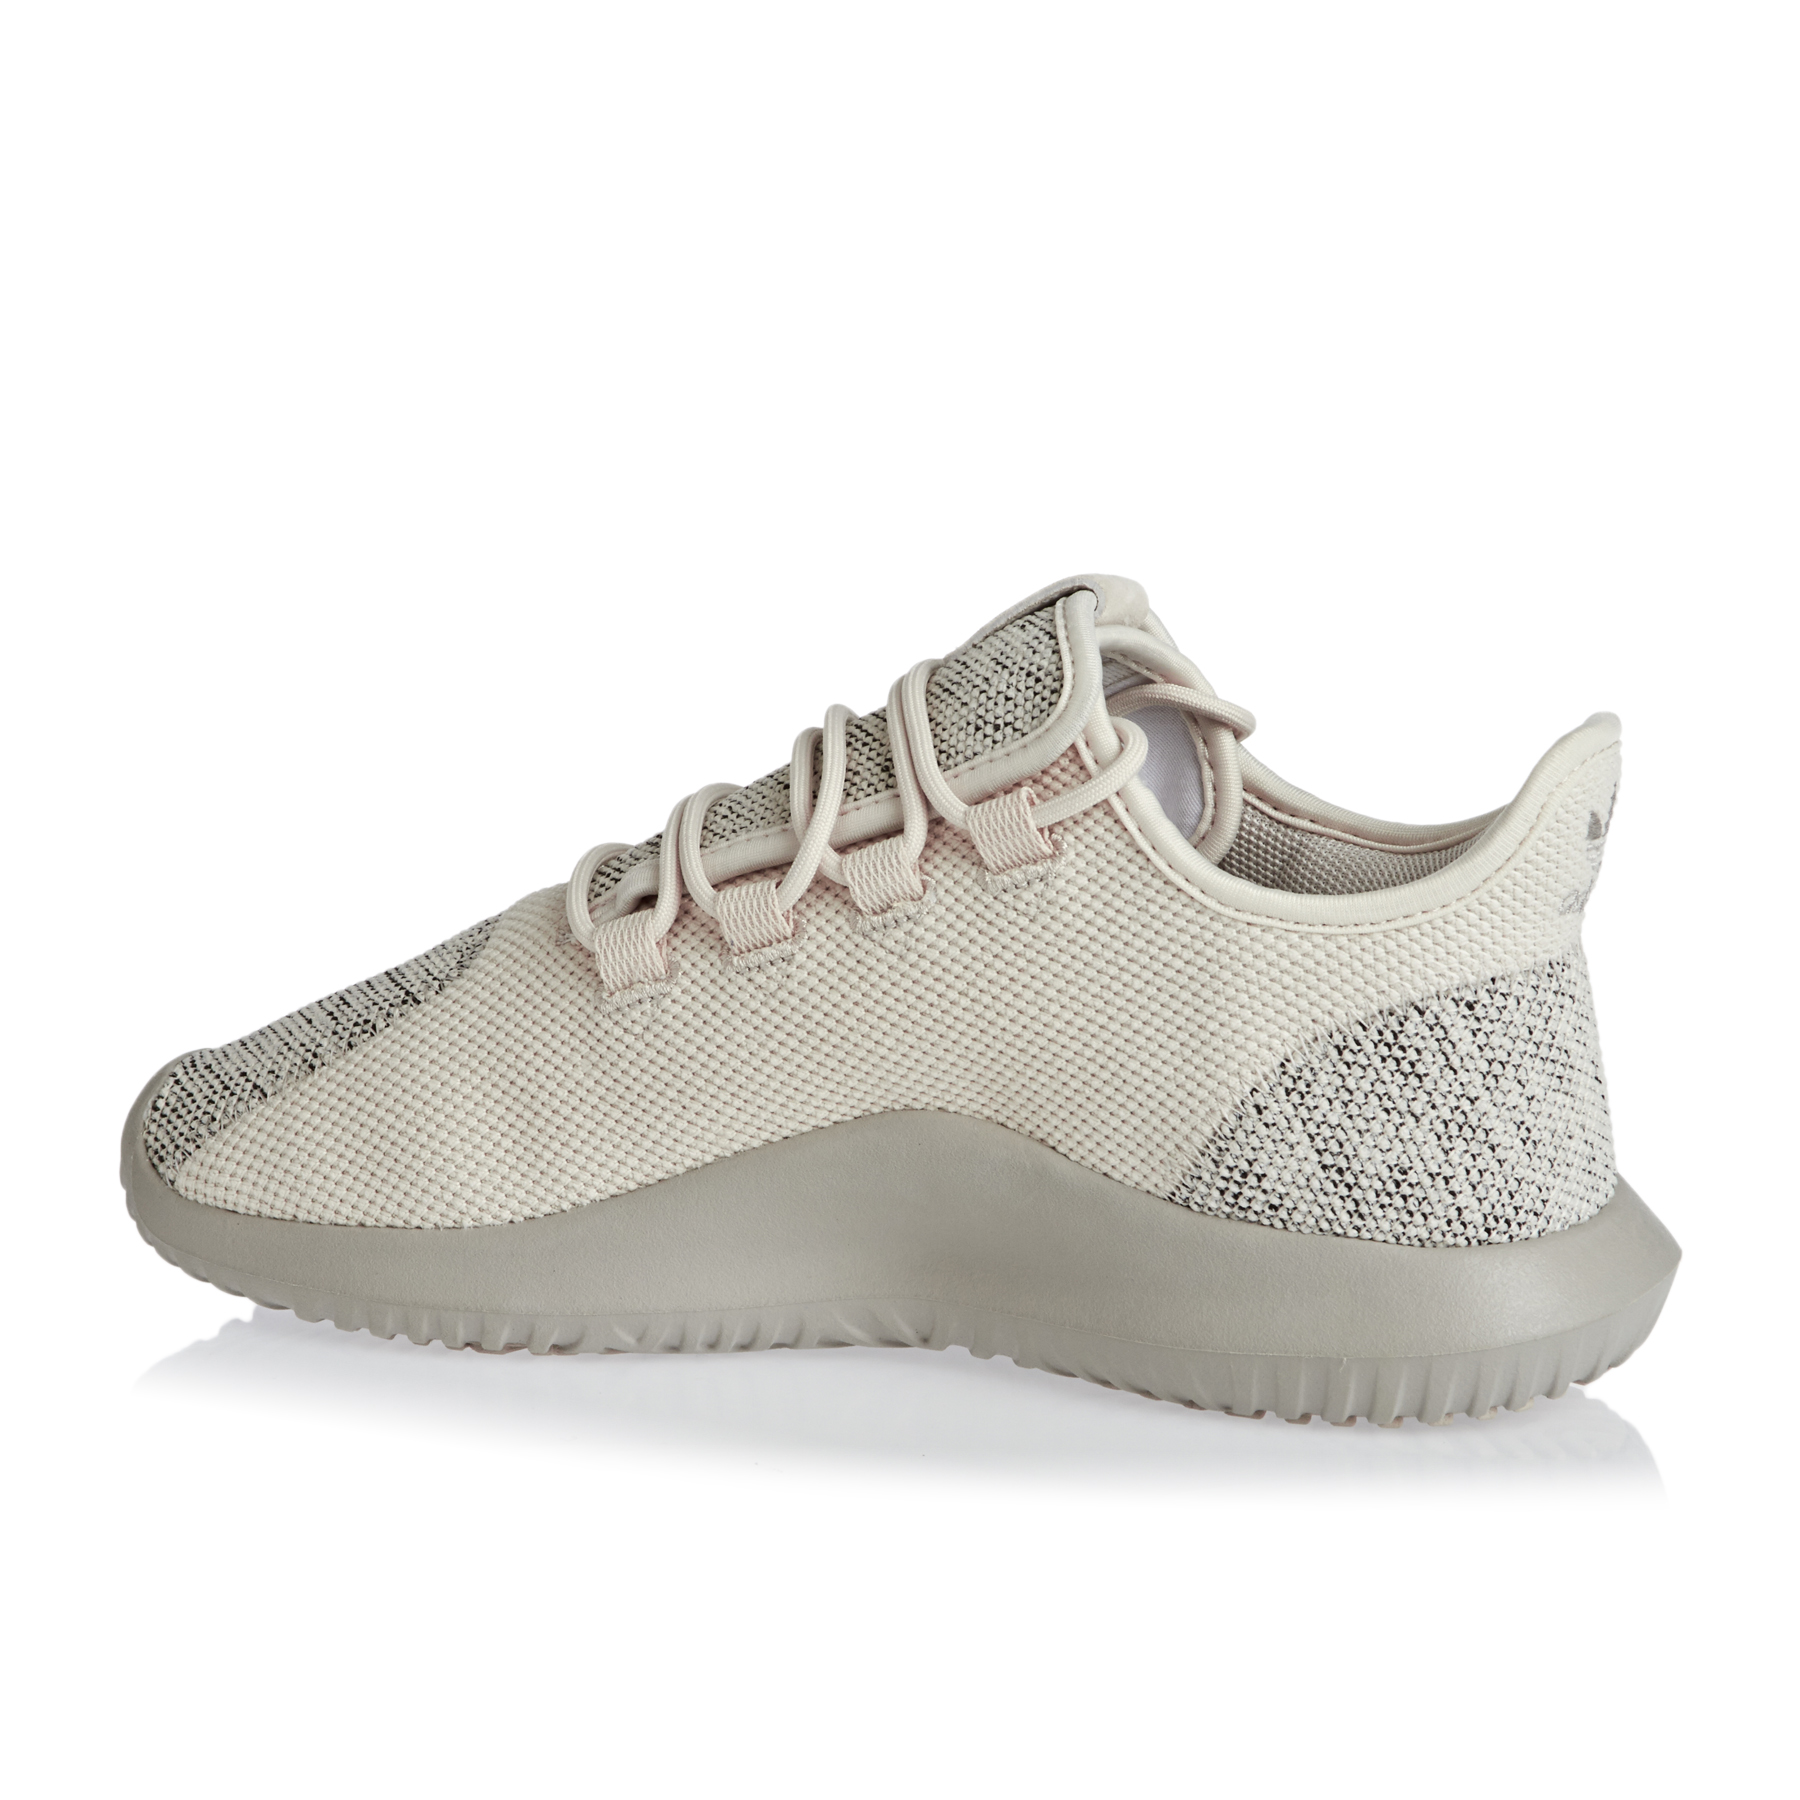 Adidas Originals Tubular Shadow Knit Shoes Free Delivery